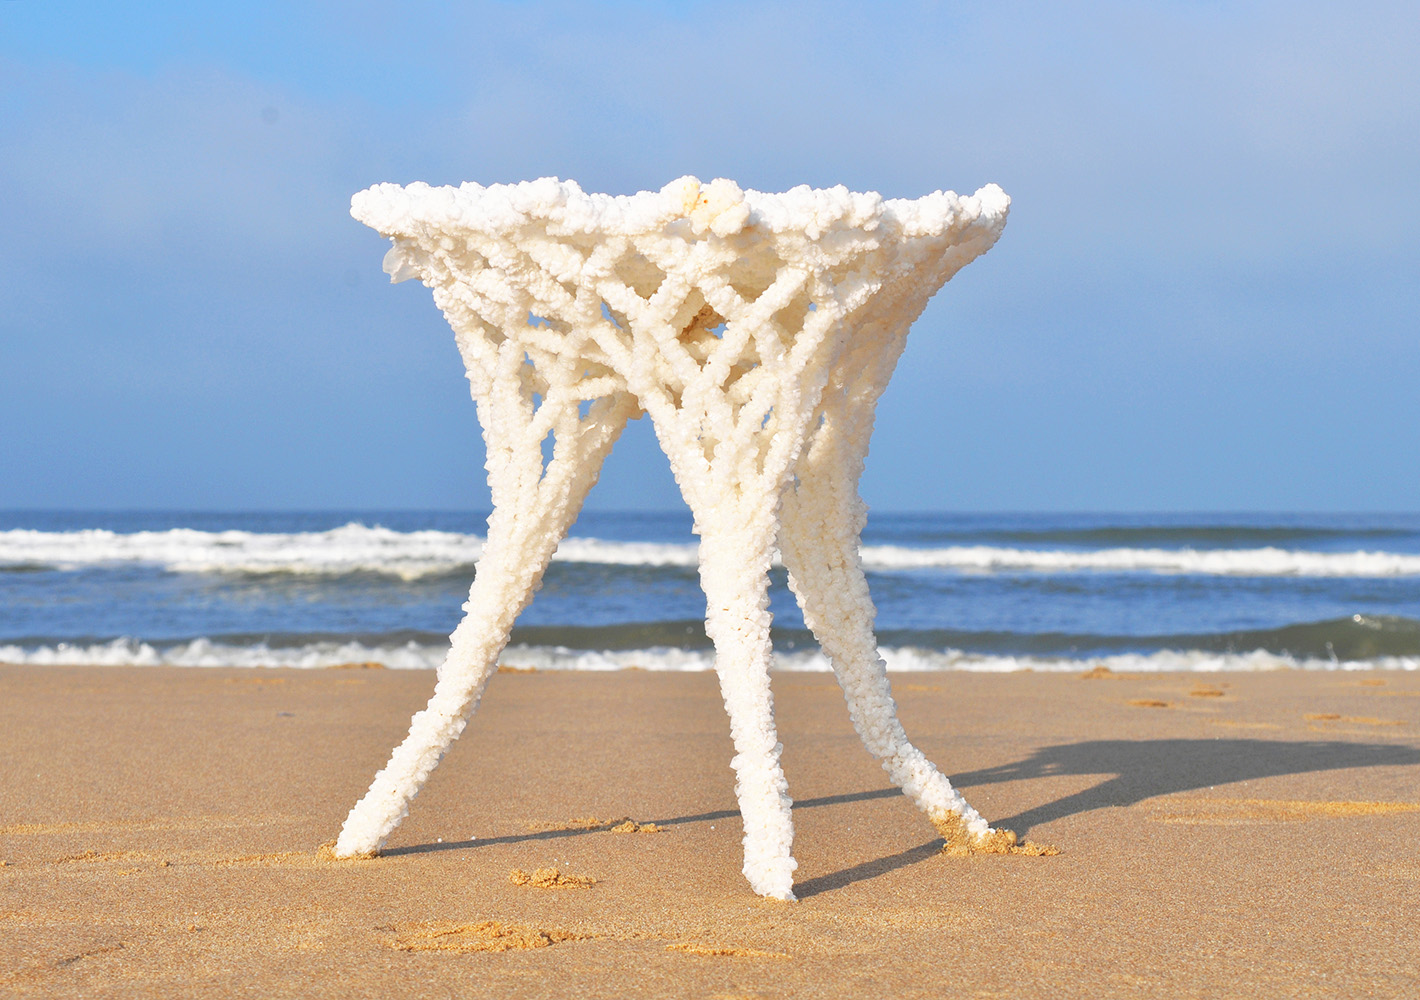 SEAt   by Karlijn Sibbel, a stool structure created by using Salt as a textile hardener.